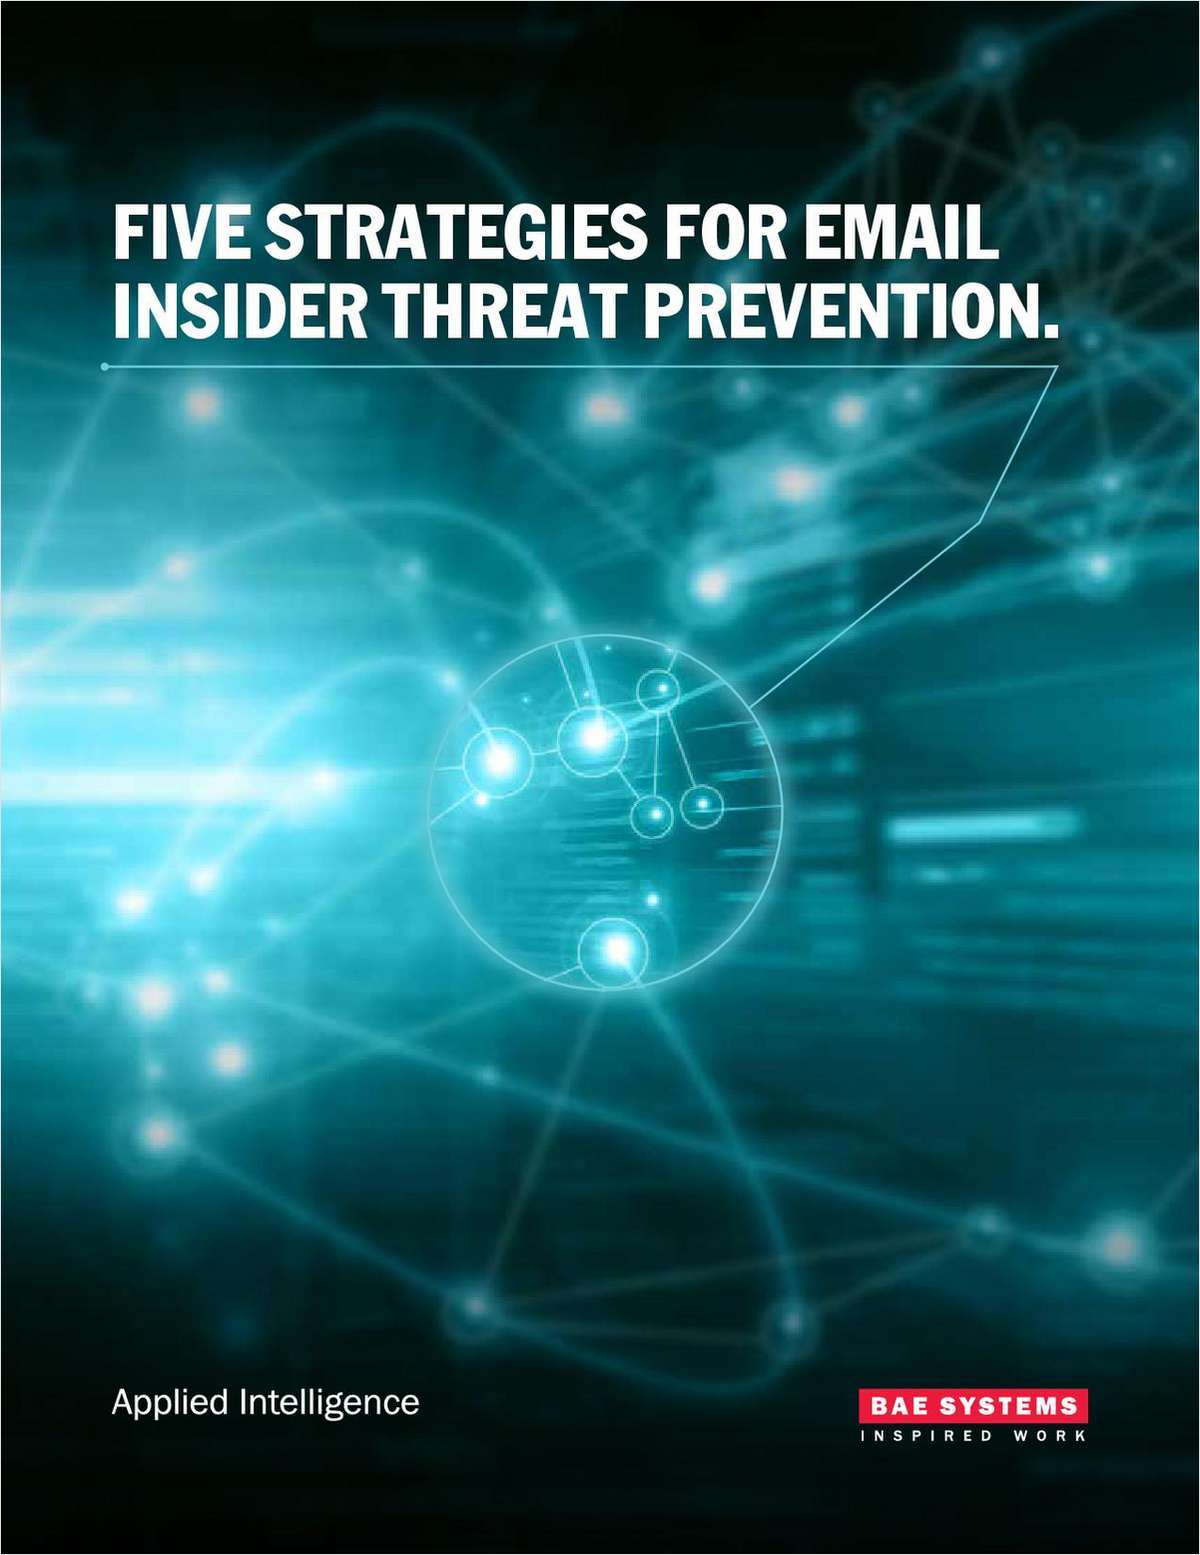 Five Strategies for Email Insider Threat Prevention